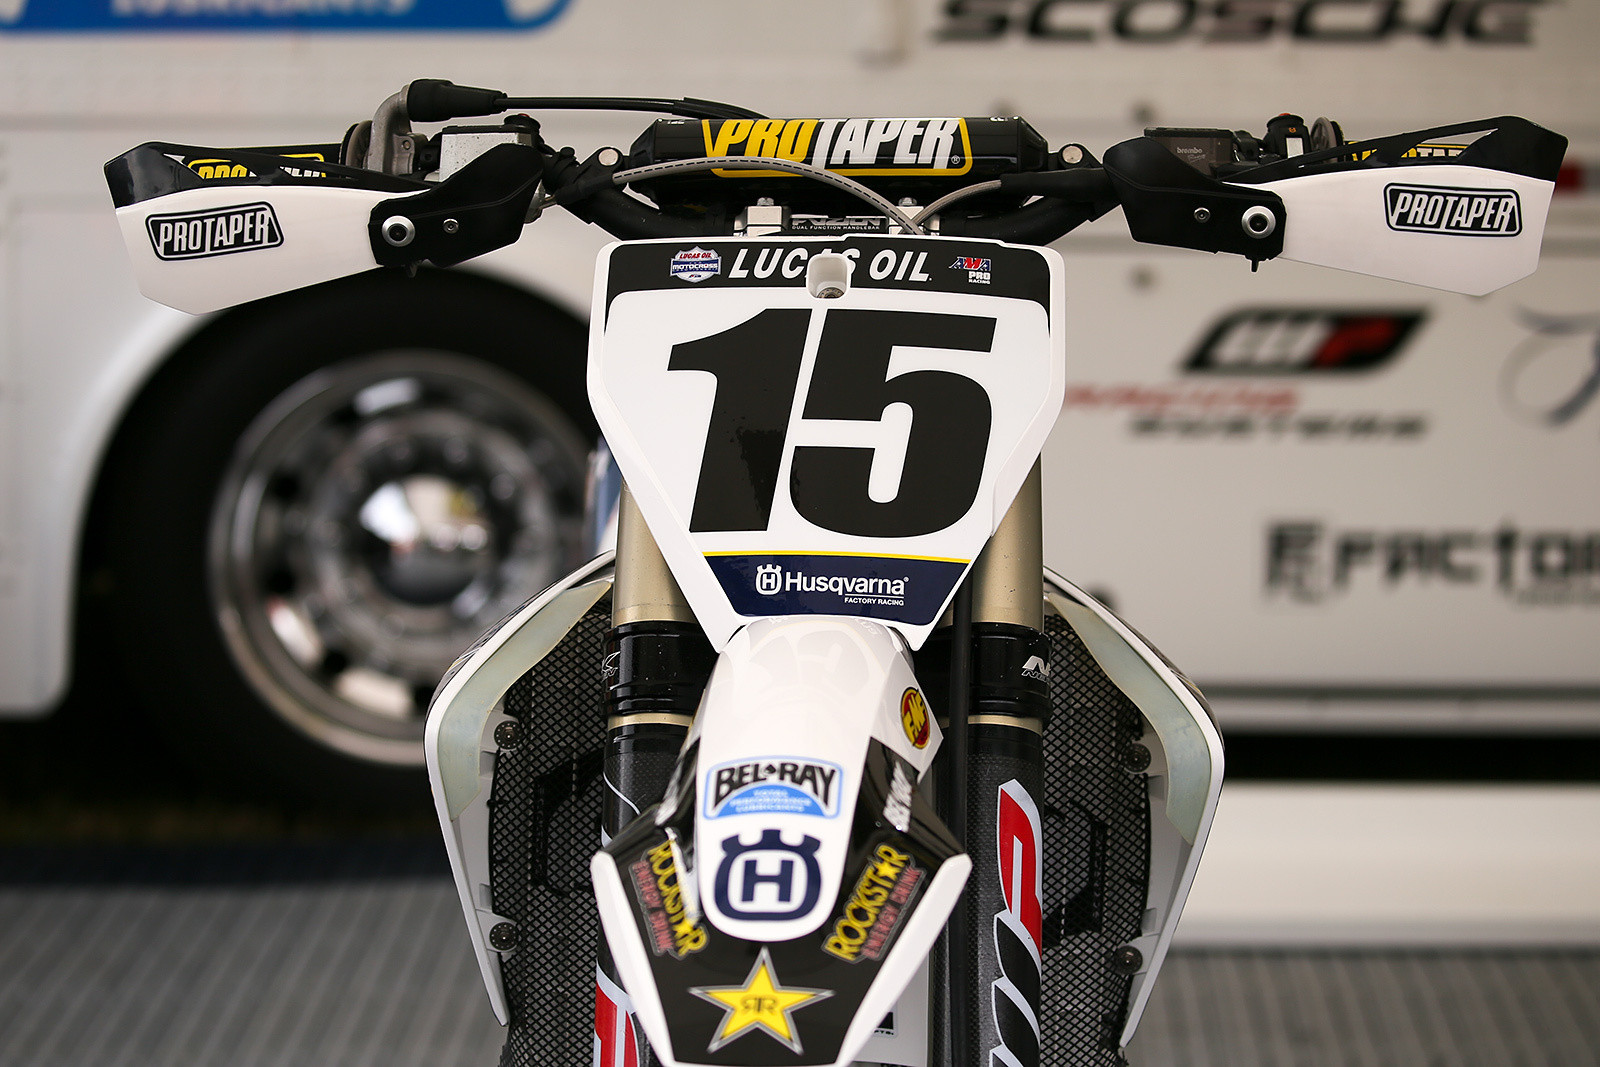 Dean Wilson's bike had simple add-ons to the handquards that he always runs. Also, note the lips added to the radiator shrouds on his bike, to prevent the long-legged Scot from hooking his boots on them. They've experimented with carbon and aluminum versions. The current ones are manufactured on a 3D printer.